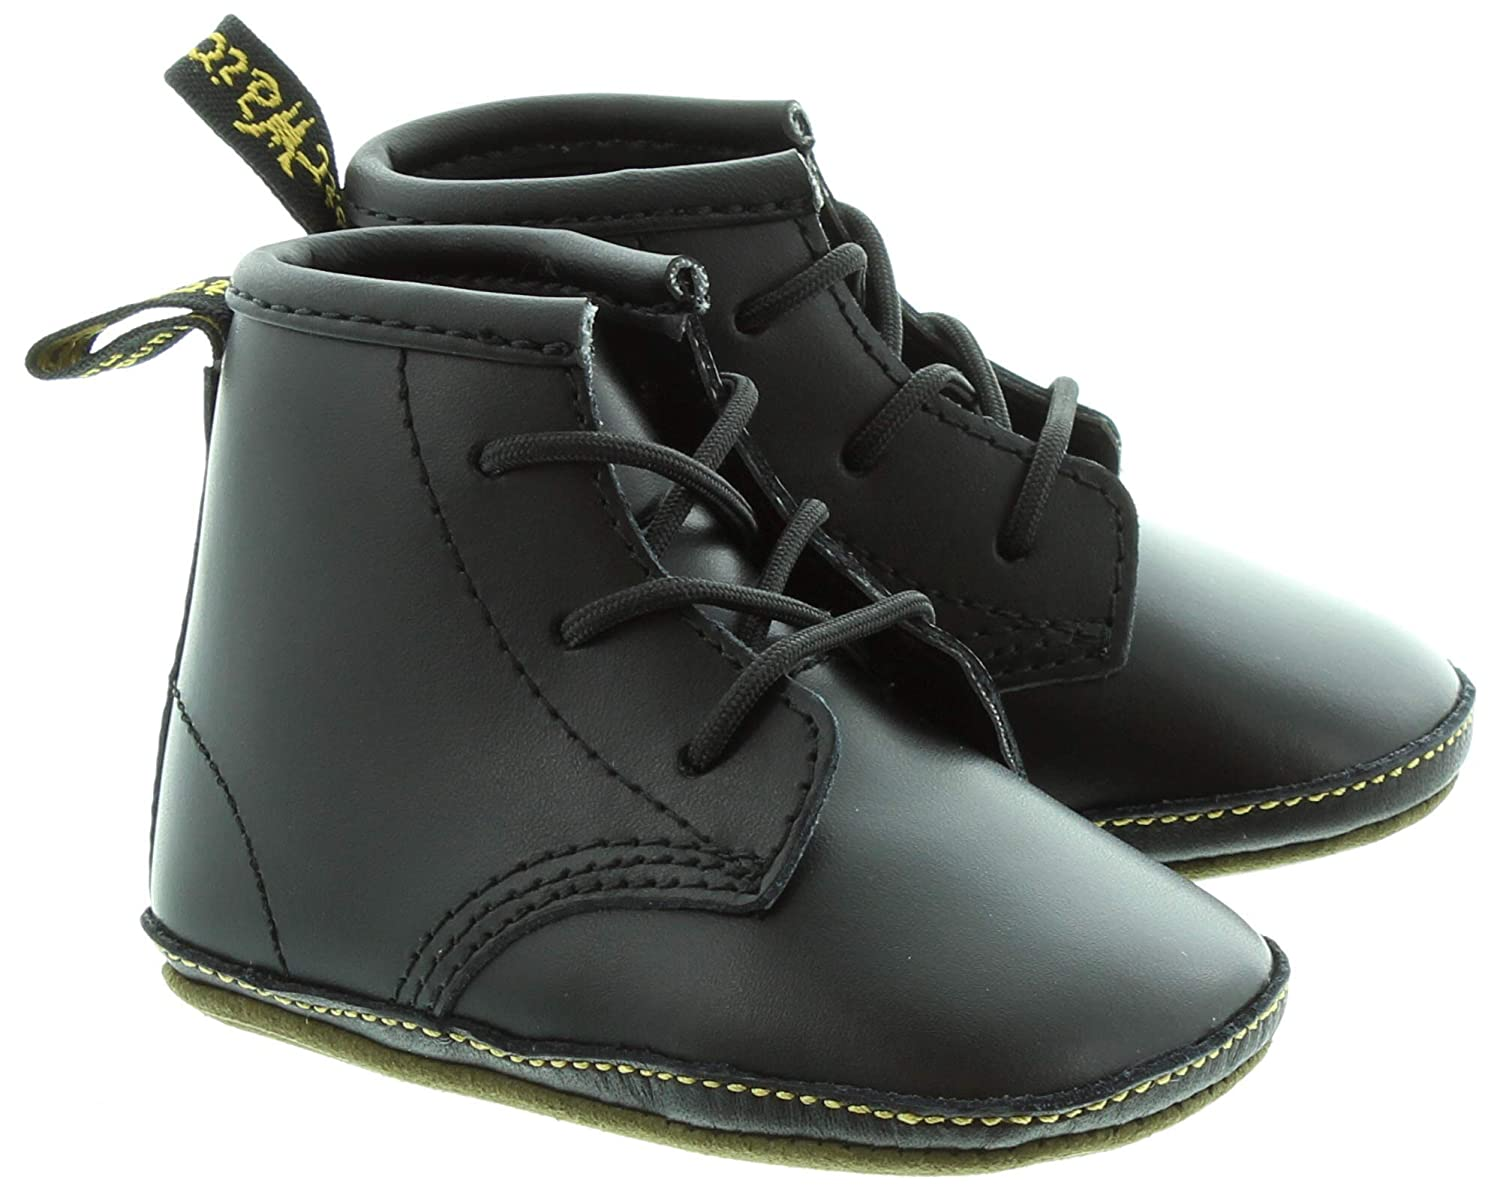 9be4997181a7 Dr. Martens - Auburn Crib Lace Boot in Black  Amazon.co.uk  Shoes   Bags